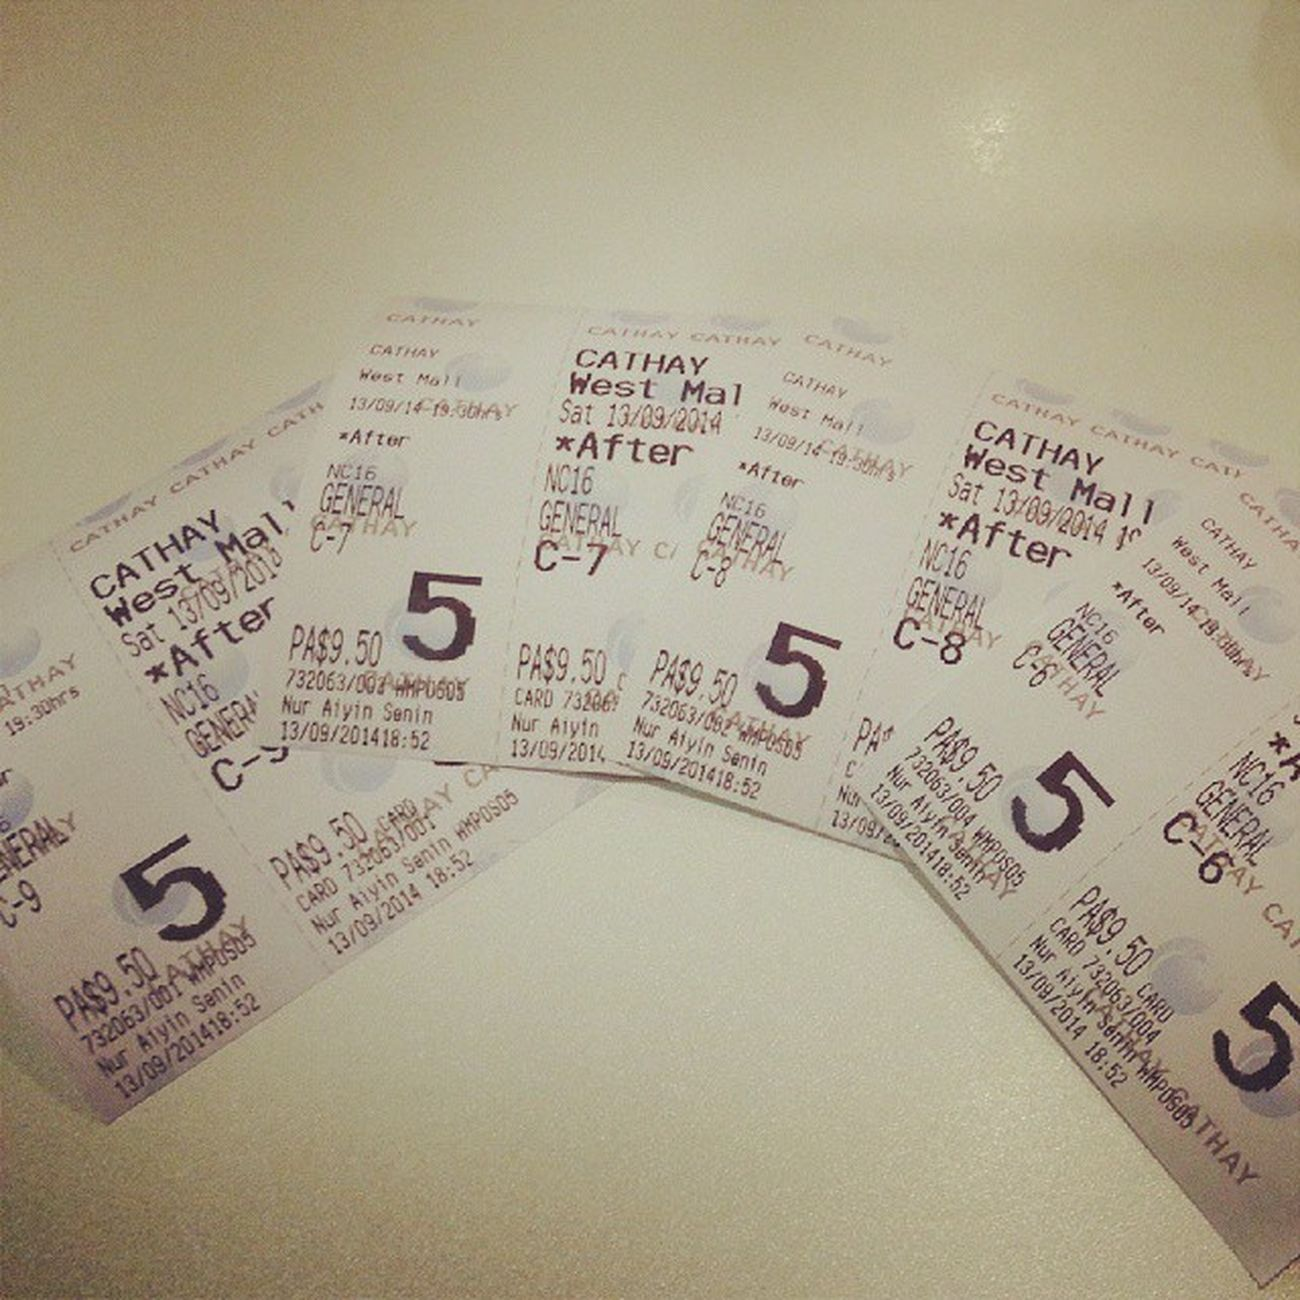 Watching movie with fam ♥. Treating them cos smth went wrong lol! Afterimages Yay Finally Solong familymovietgt